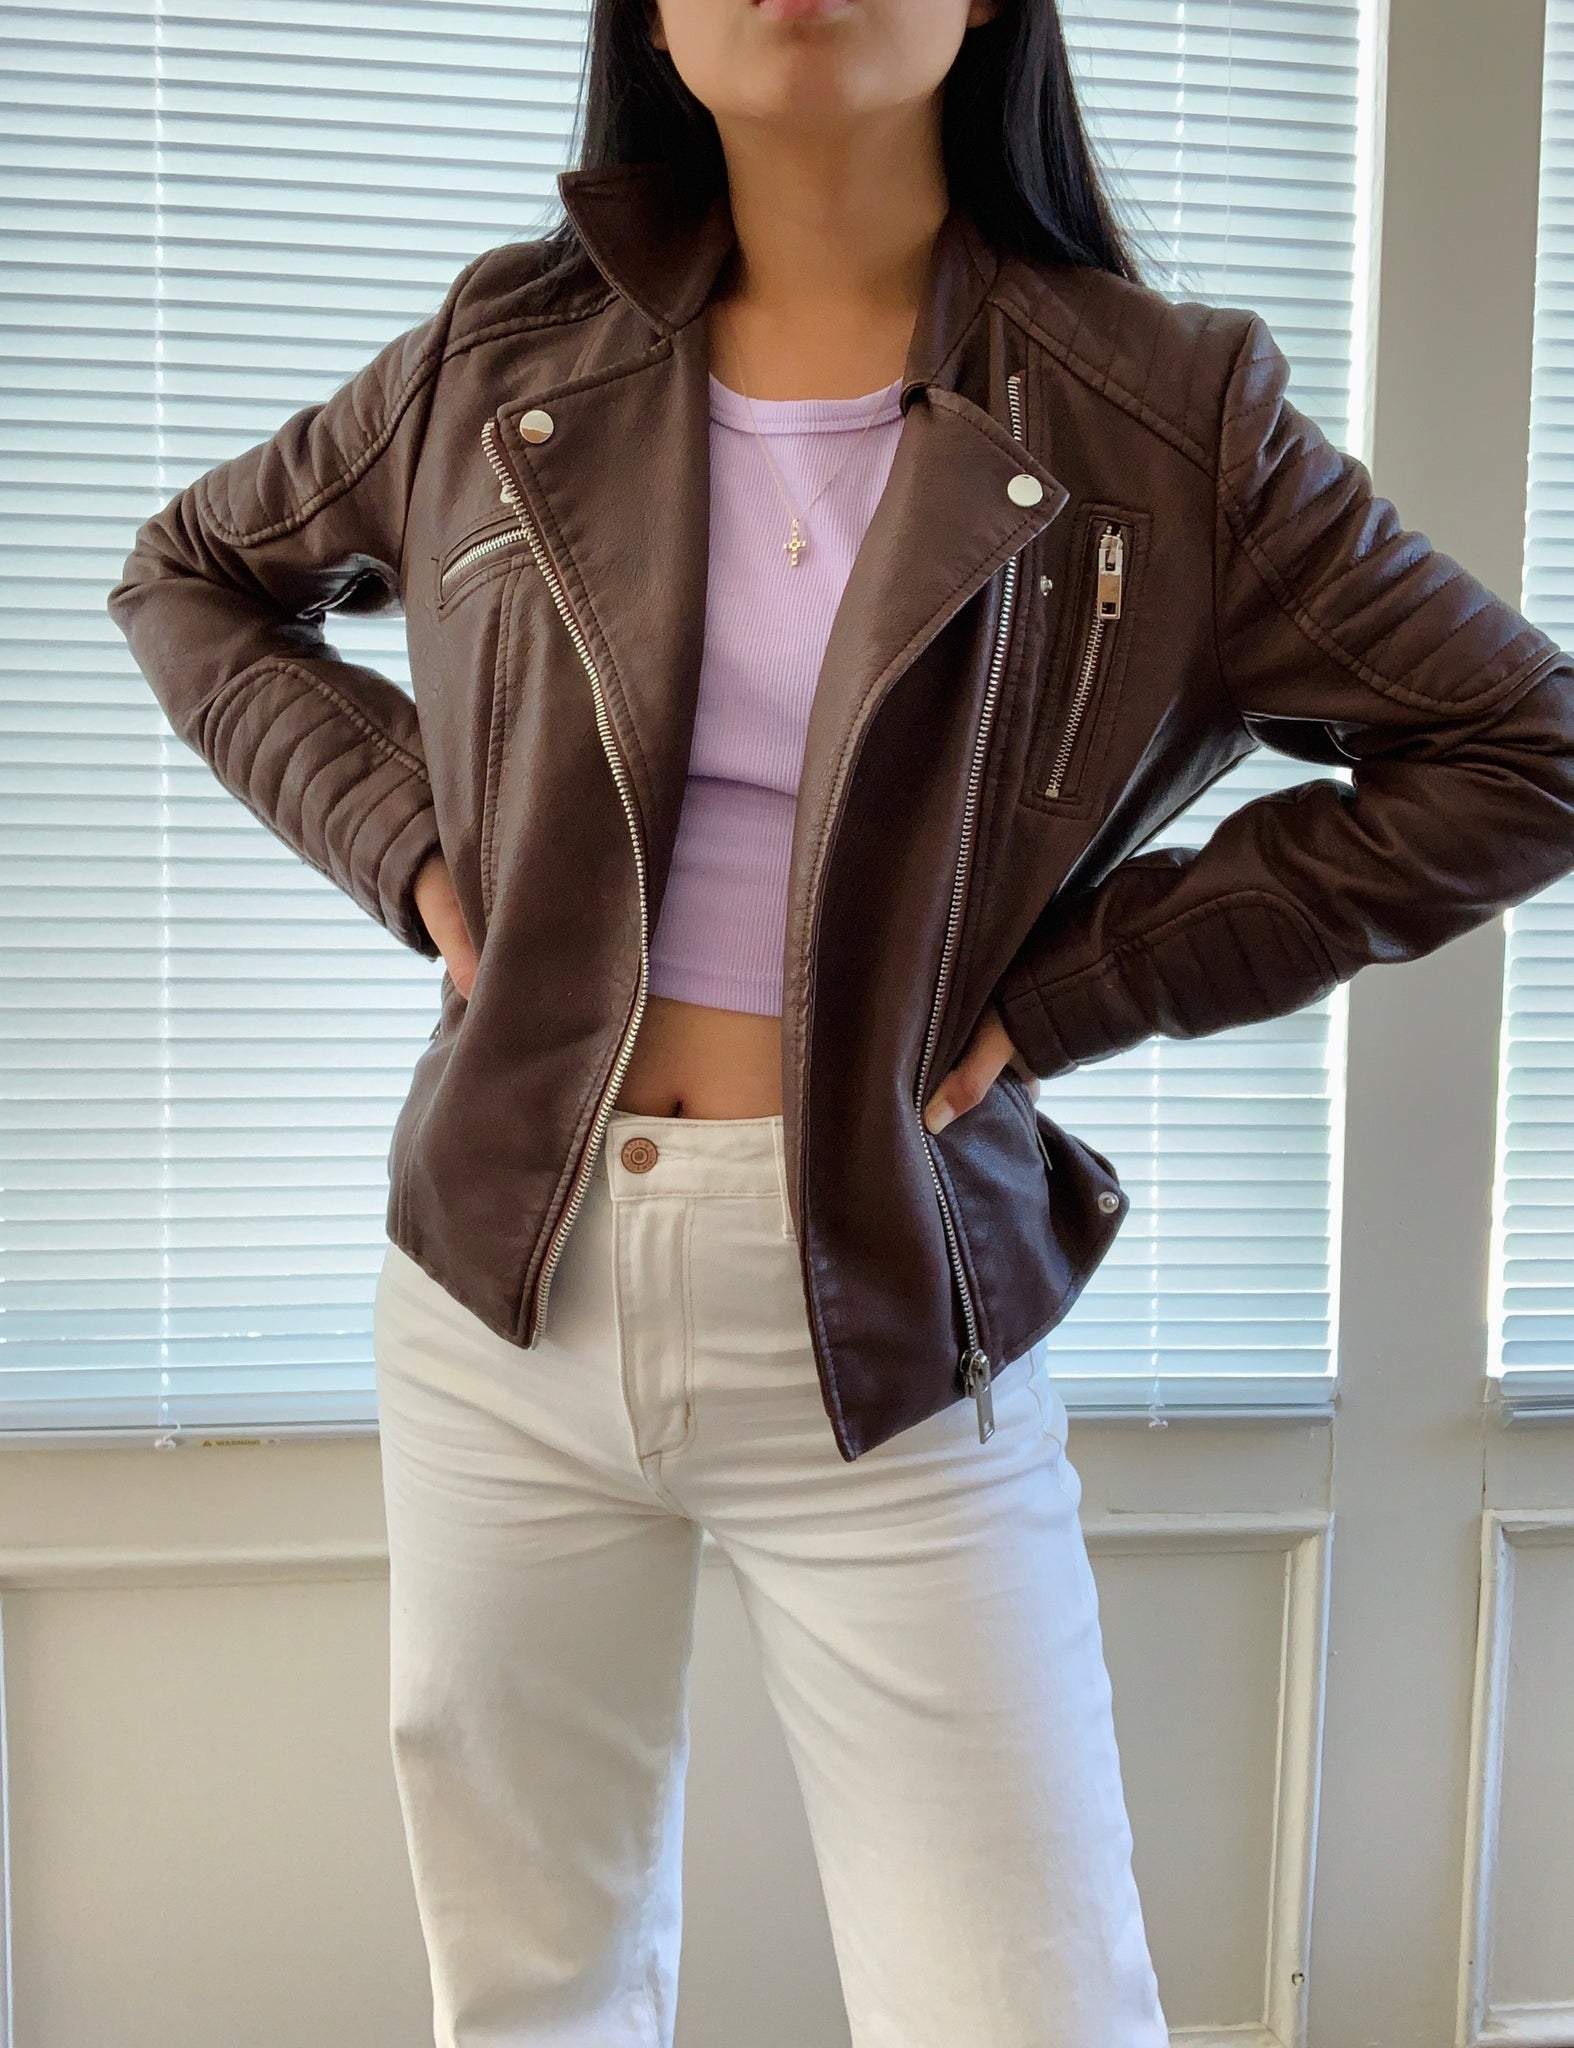 Vintage Faux Oversized Leather Jacket: mint condition